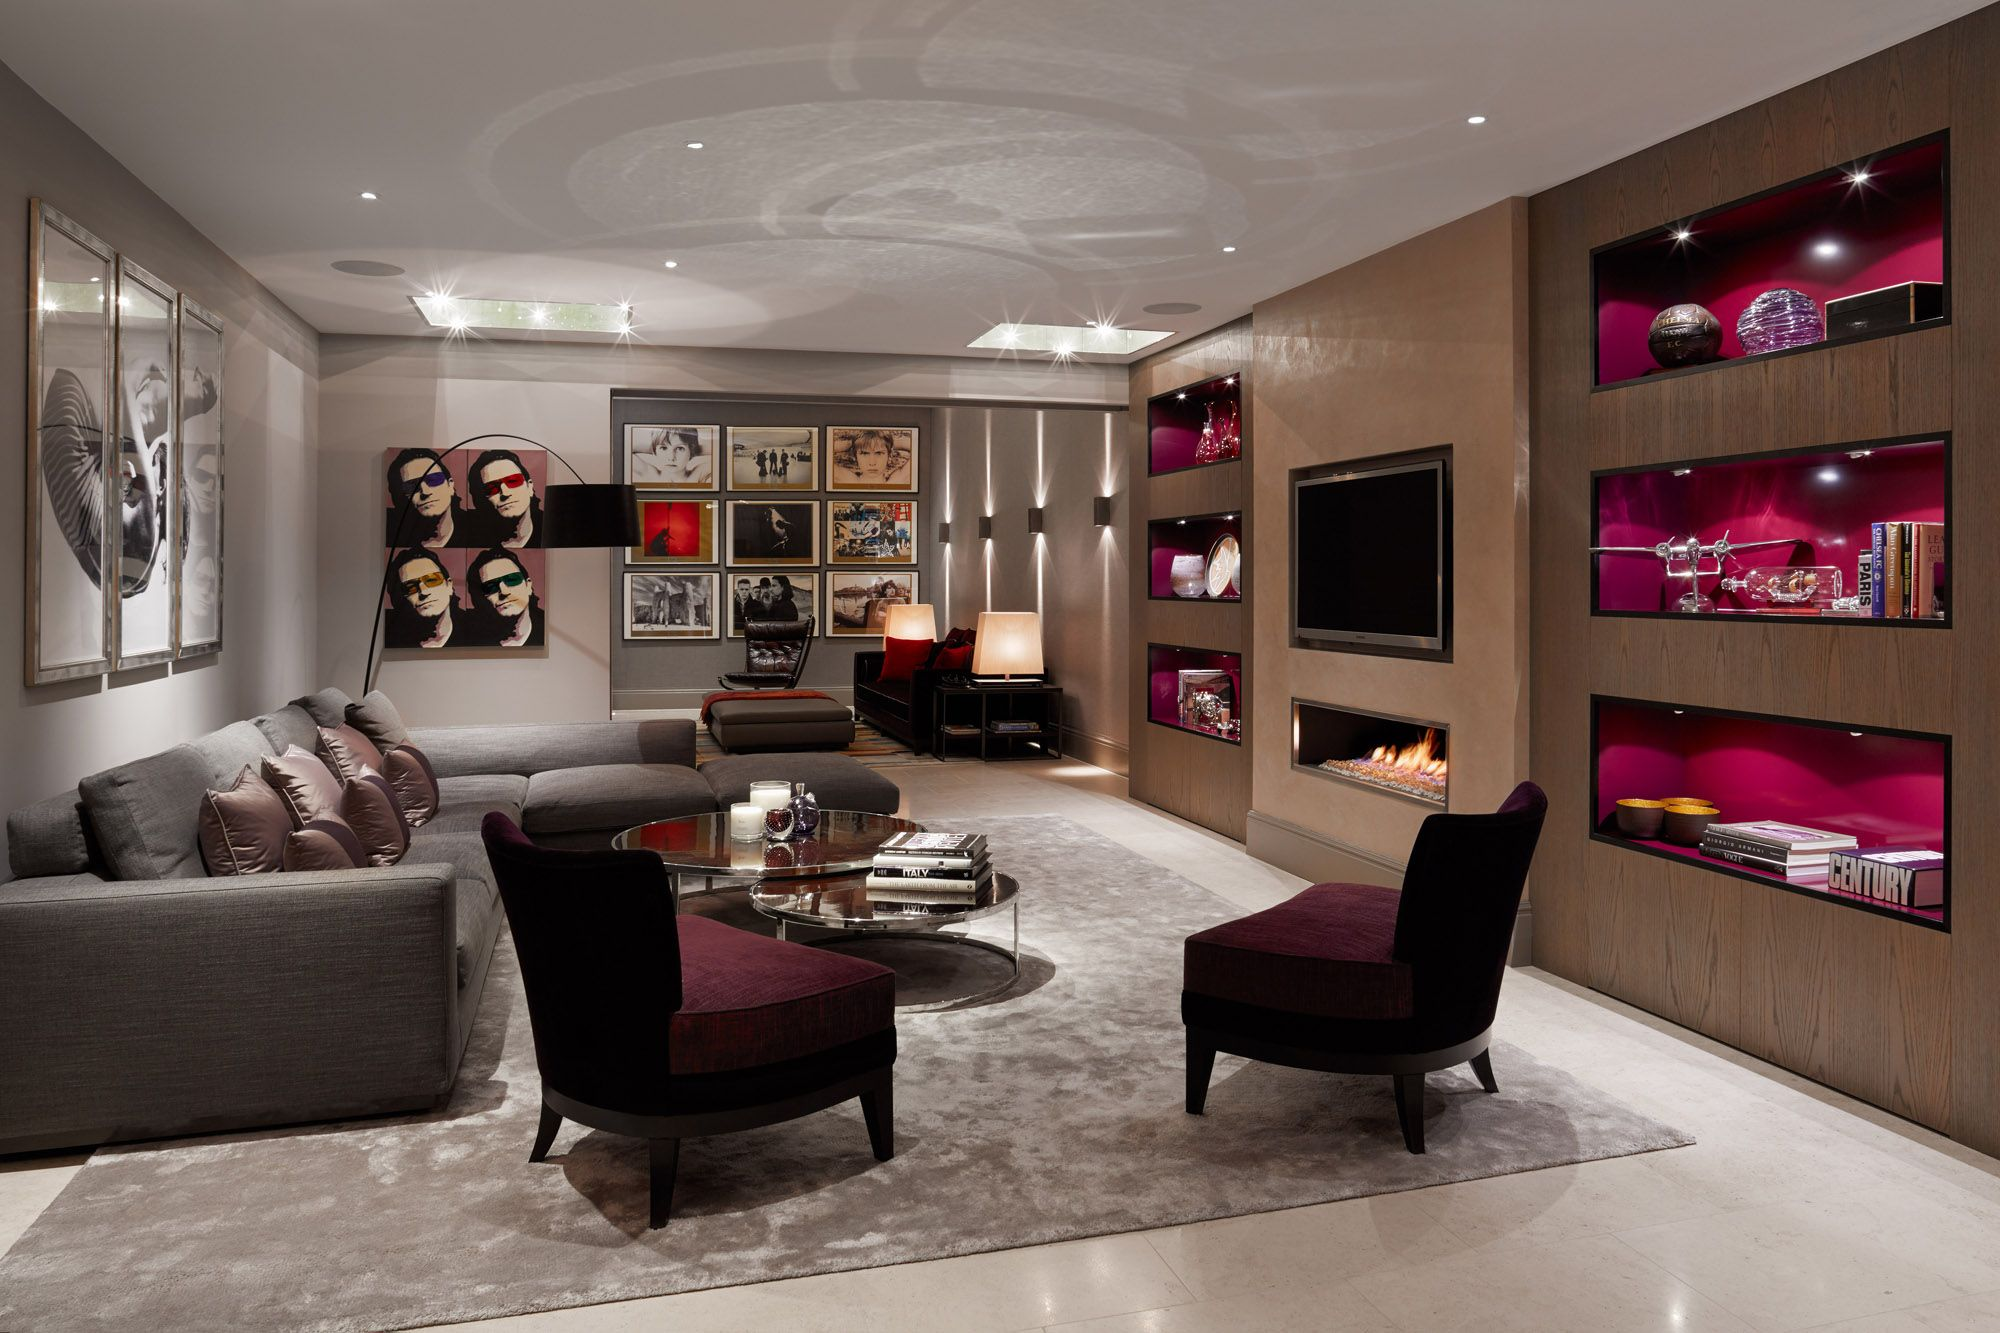 game room lighting ideas. We Specialise In Creating Superb Lighting Design For TV, Cinema And Games Rooms. View Our Top Schemes Ideas On Your New Room. Game Room D